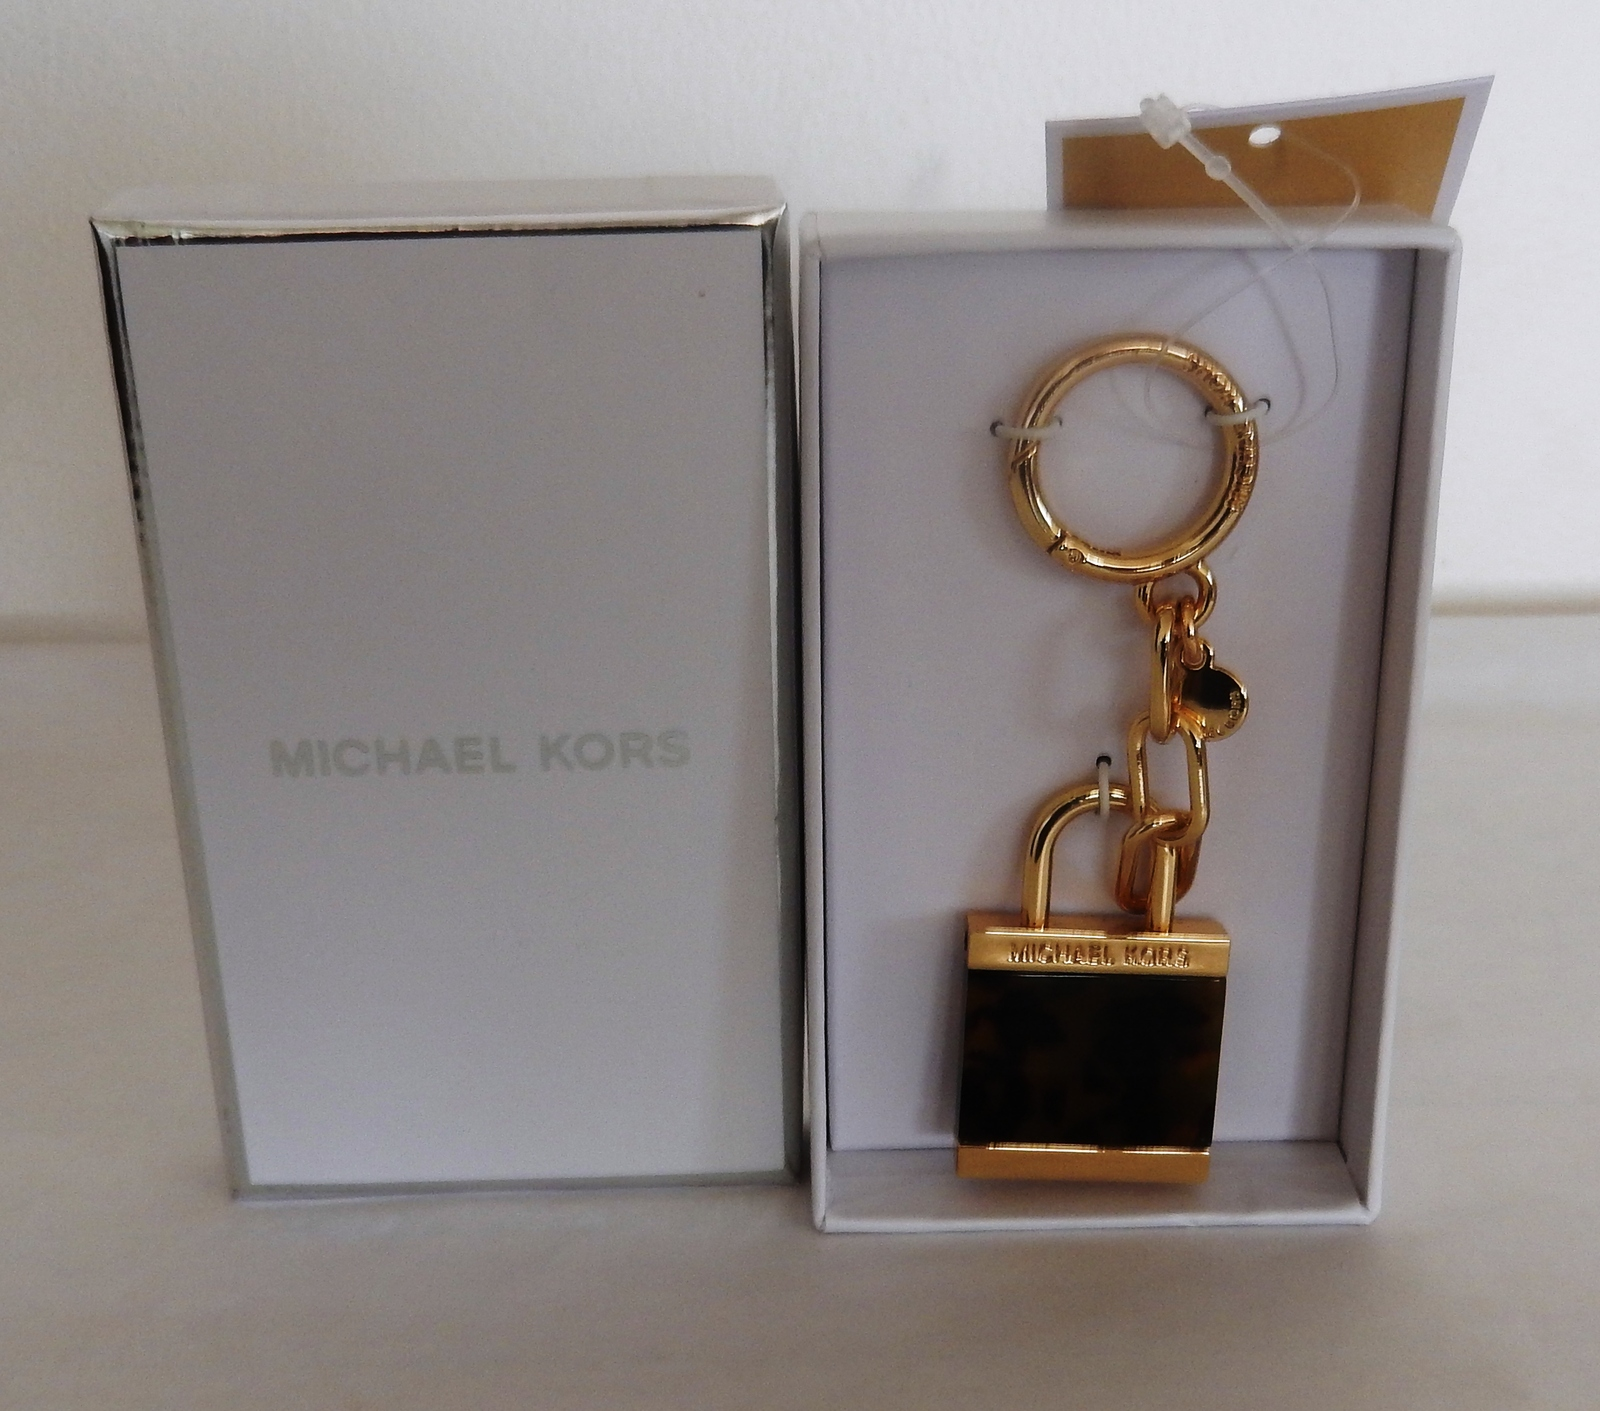 Primary image for MICHAEL KORS EXTRA LARGE LOCK CHARM IN TORTOISE COLOR AUTHENTIC NWT